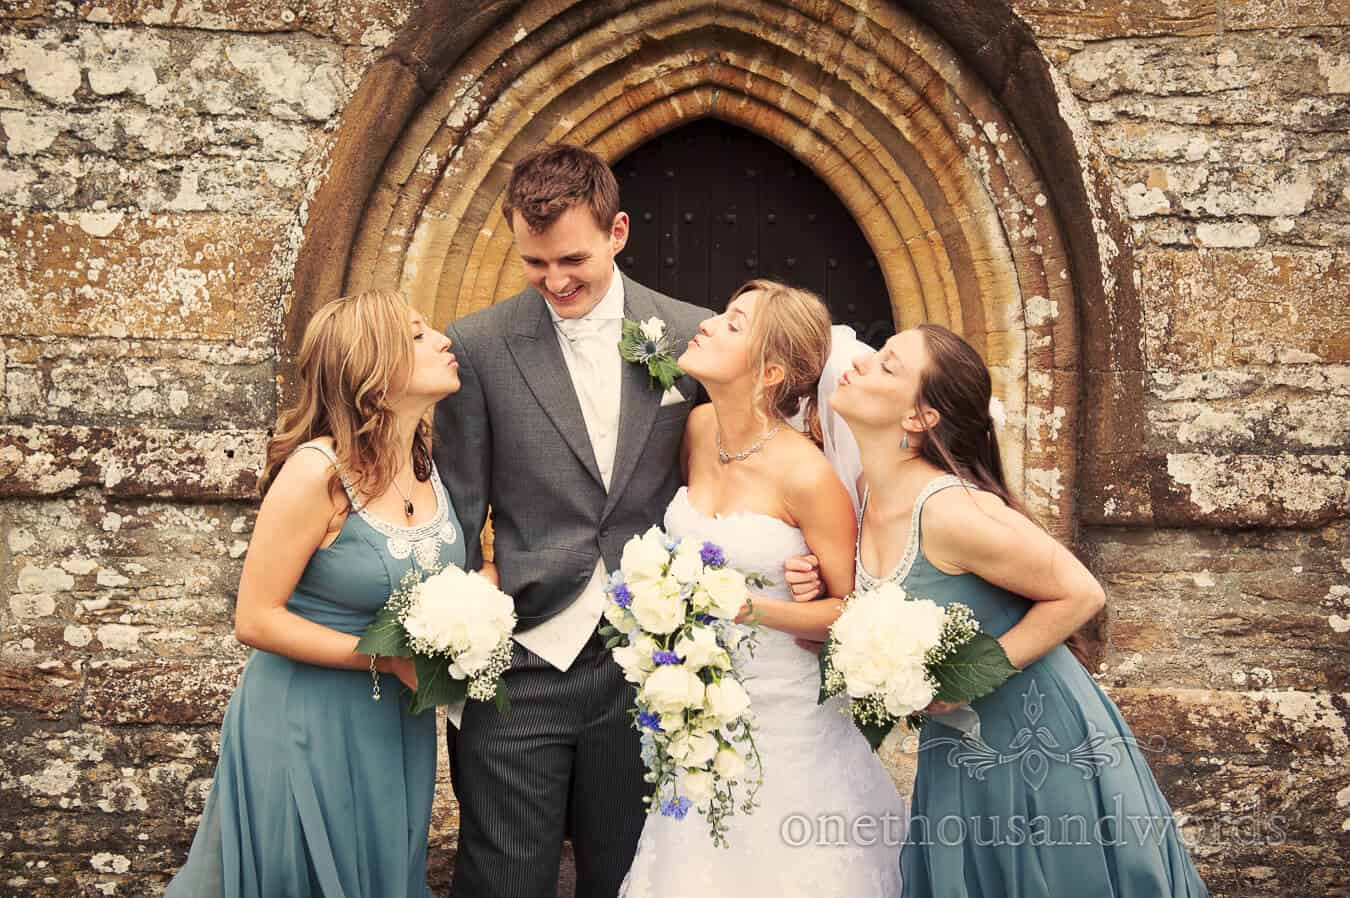 Bride and bridesmaids kiss the groom at Country Theme Wedding